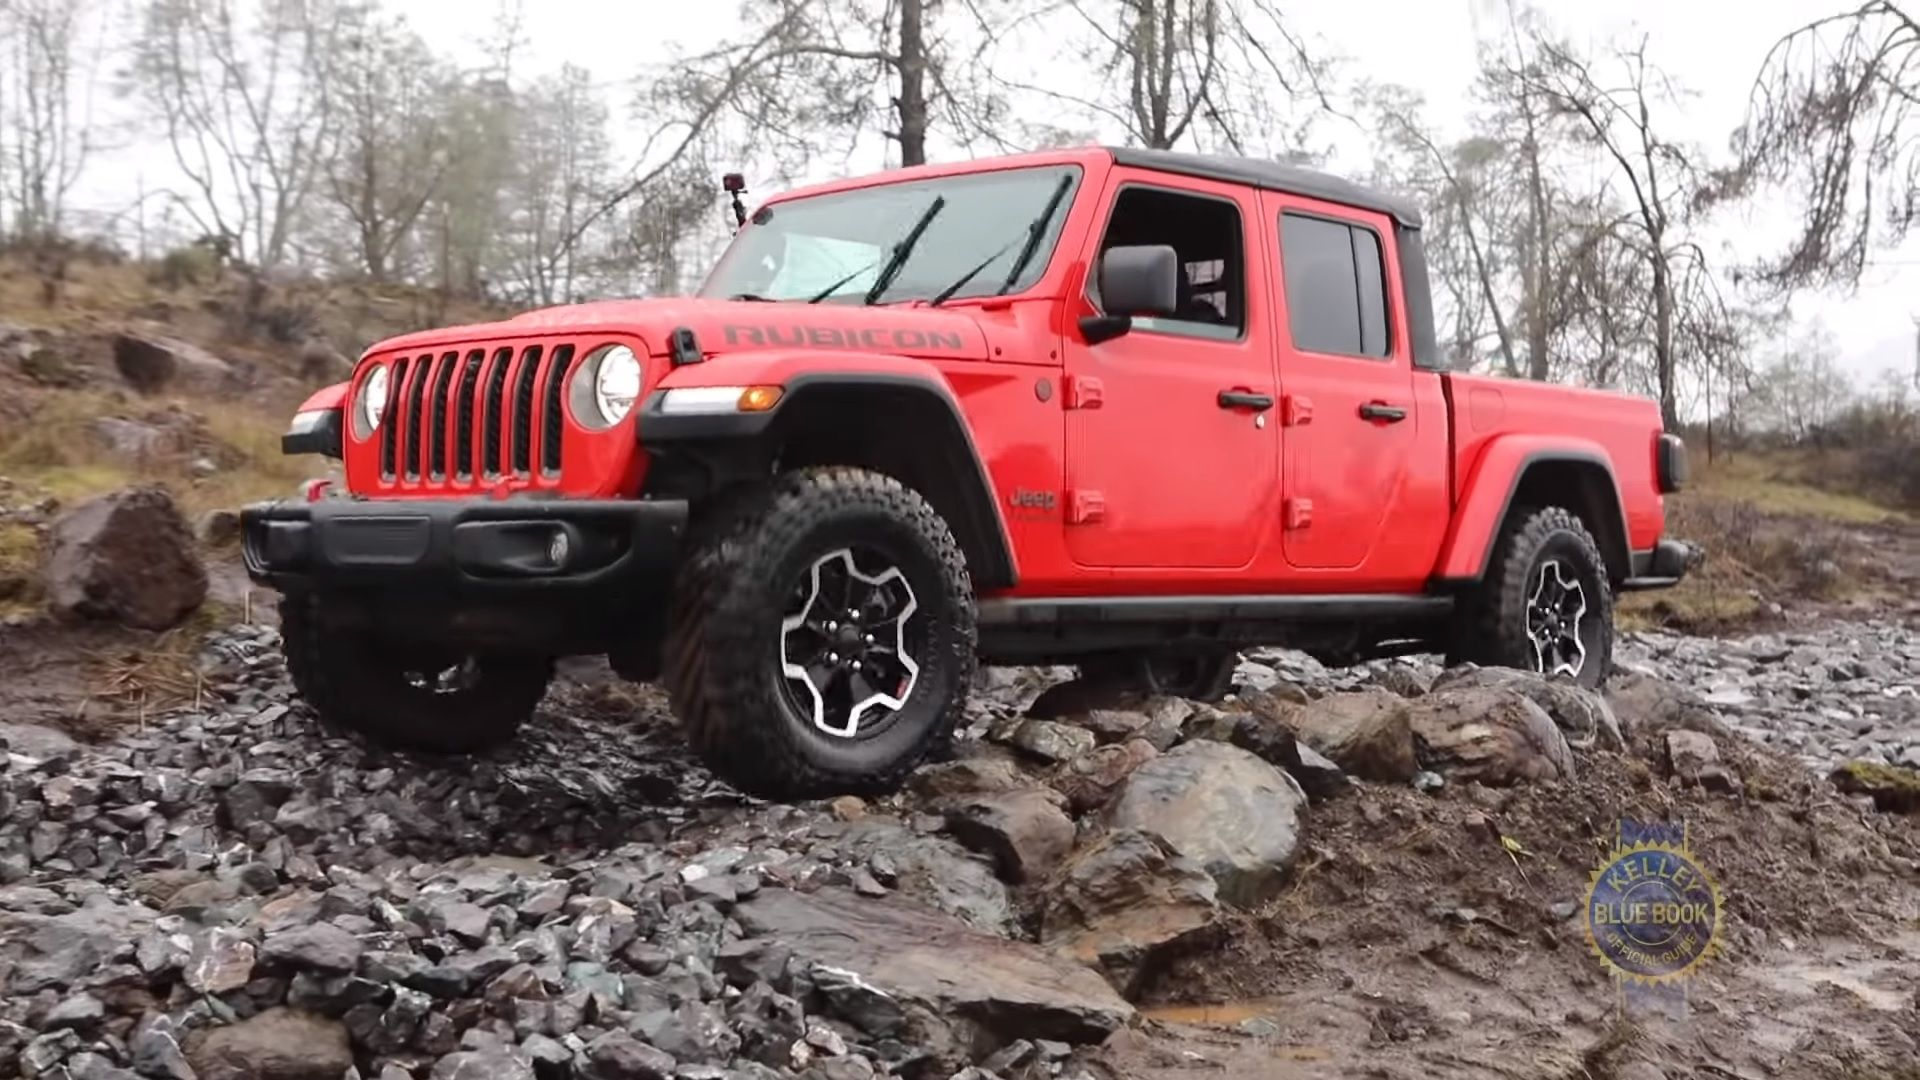 Video Reviews The 2019 Jeep Gladiator Tested And Rated